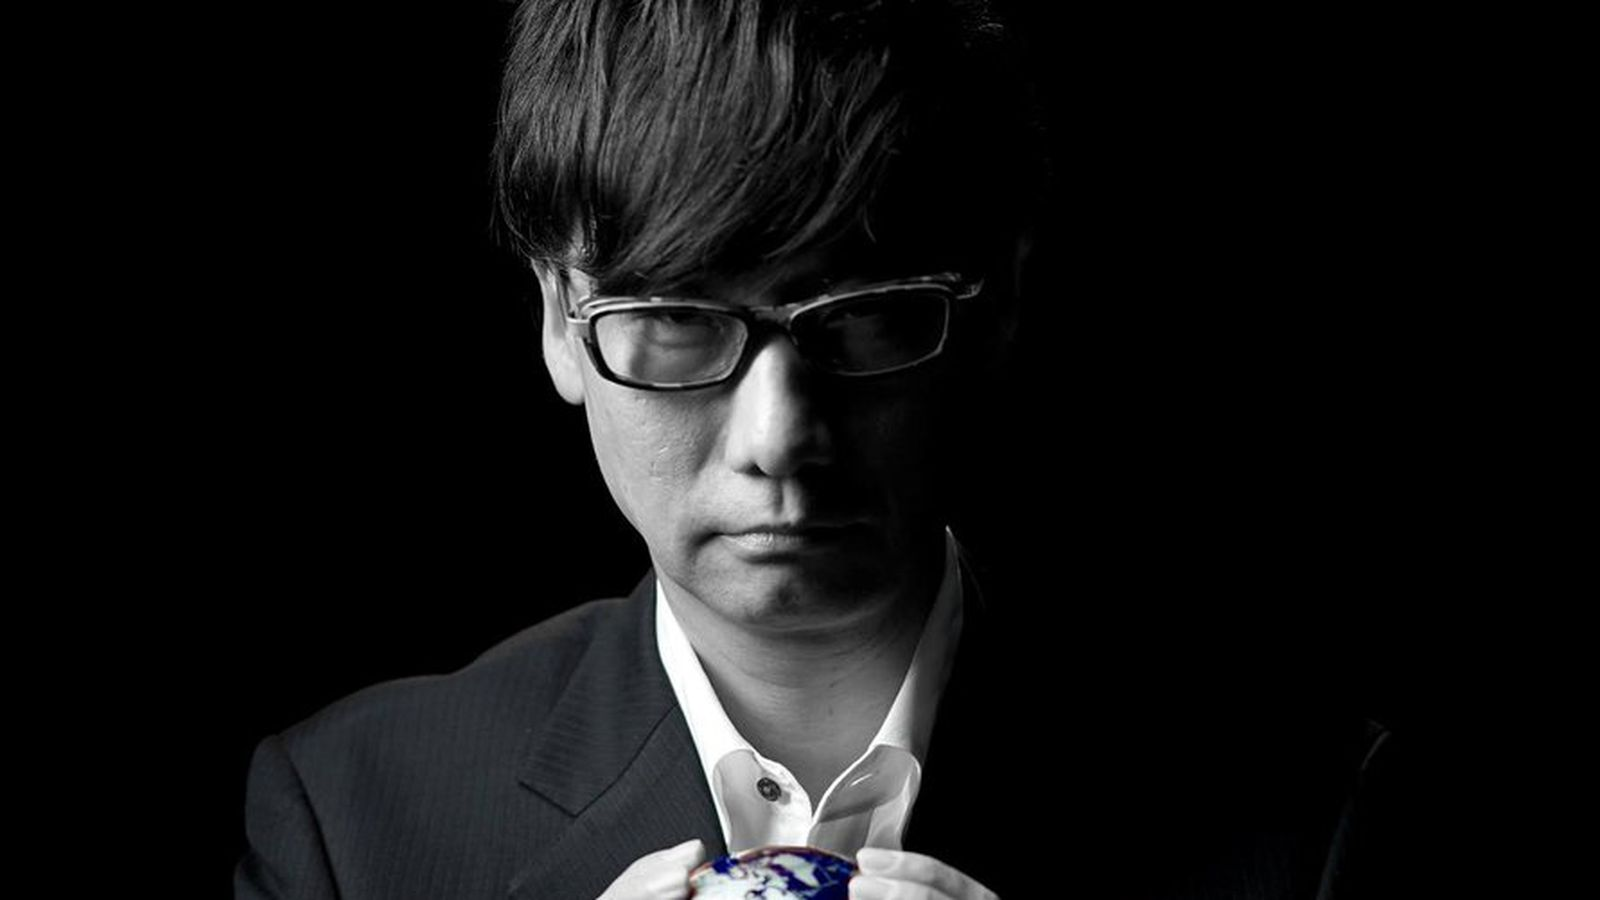 Hideo Kojima, vindicated, set to grace The Game Awards stage this year